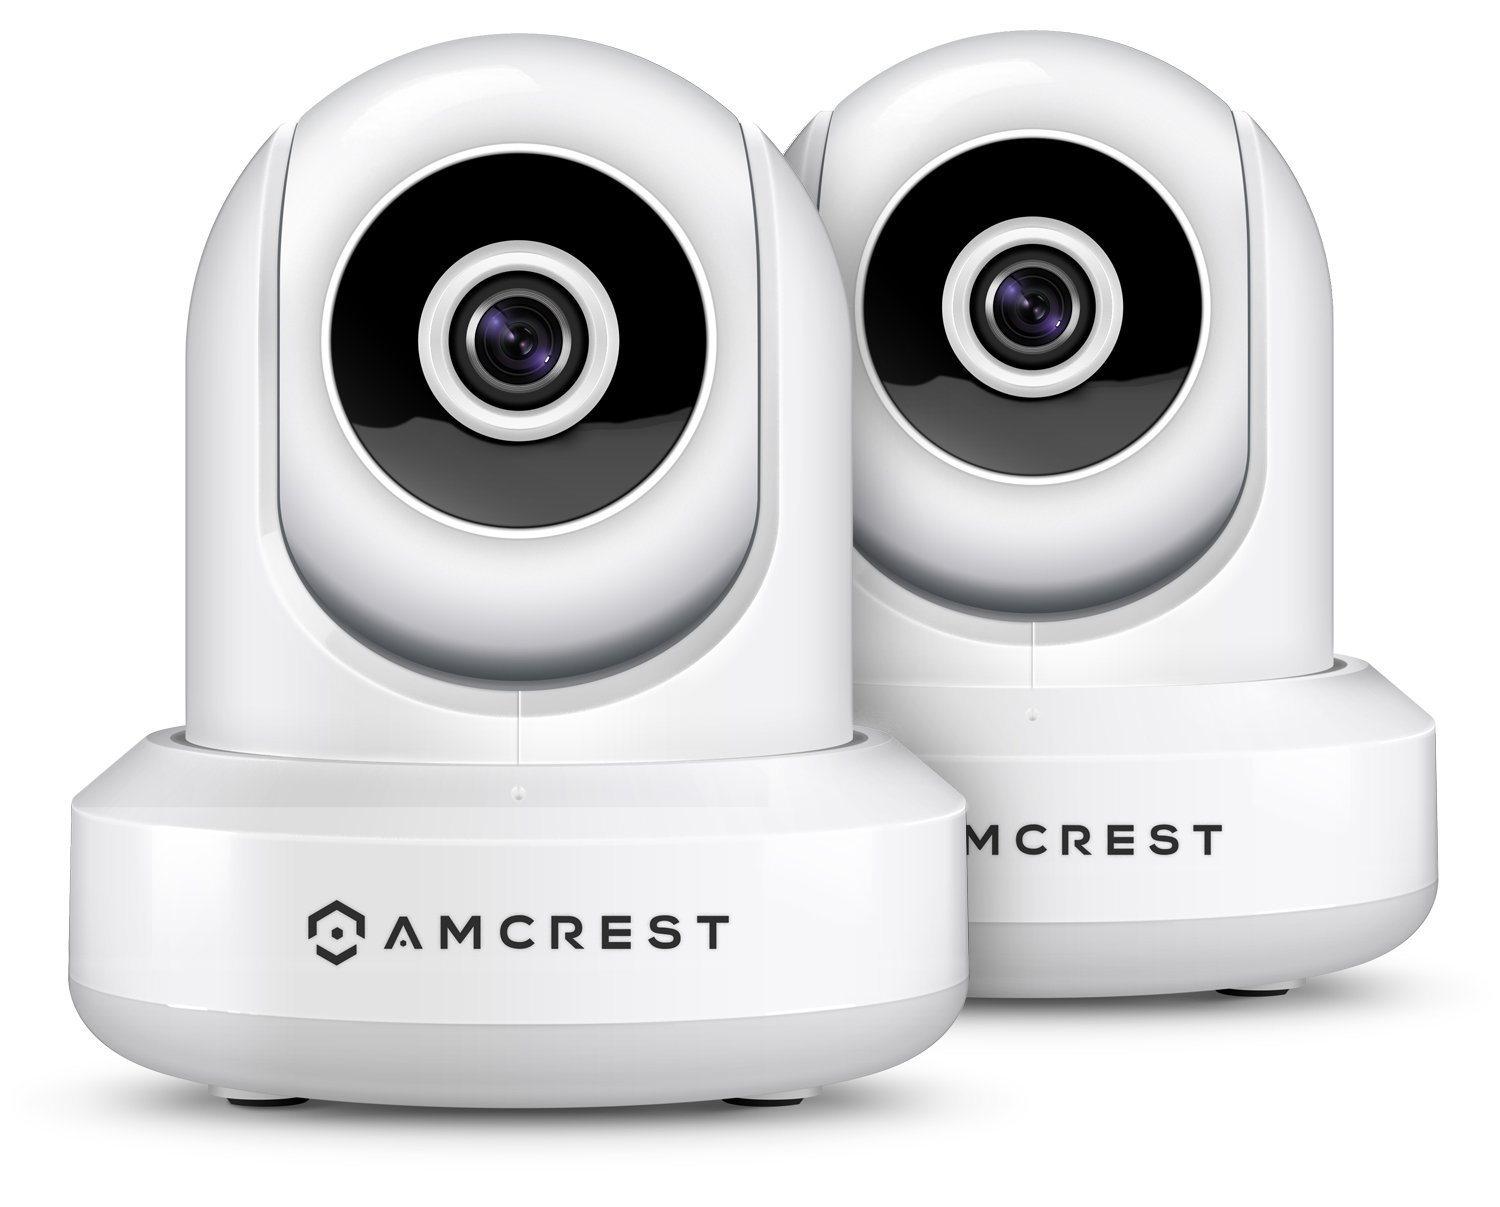 2-Pack Amcrest ProHD 1080P WiFi/Wireless IP Security Camera IP2M-841 Pan/Tilt, 2-Way Audio, Optional Cloud Recording, Full HD 1080P 2MP, Super Wide 90° Viewing Angle, Night Vision (White) by Amcrest